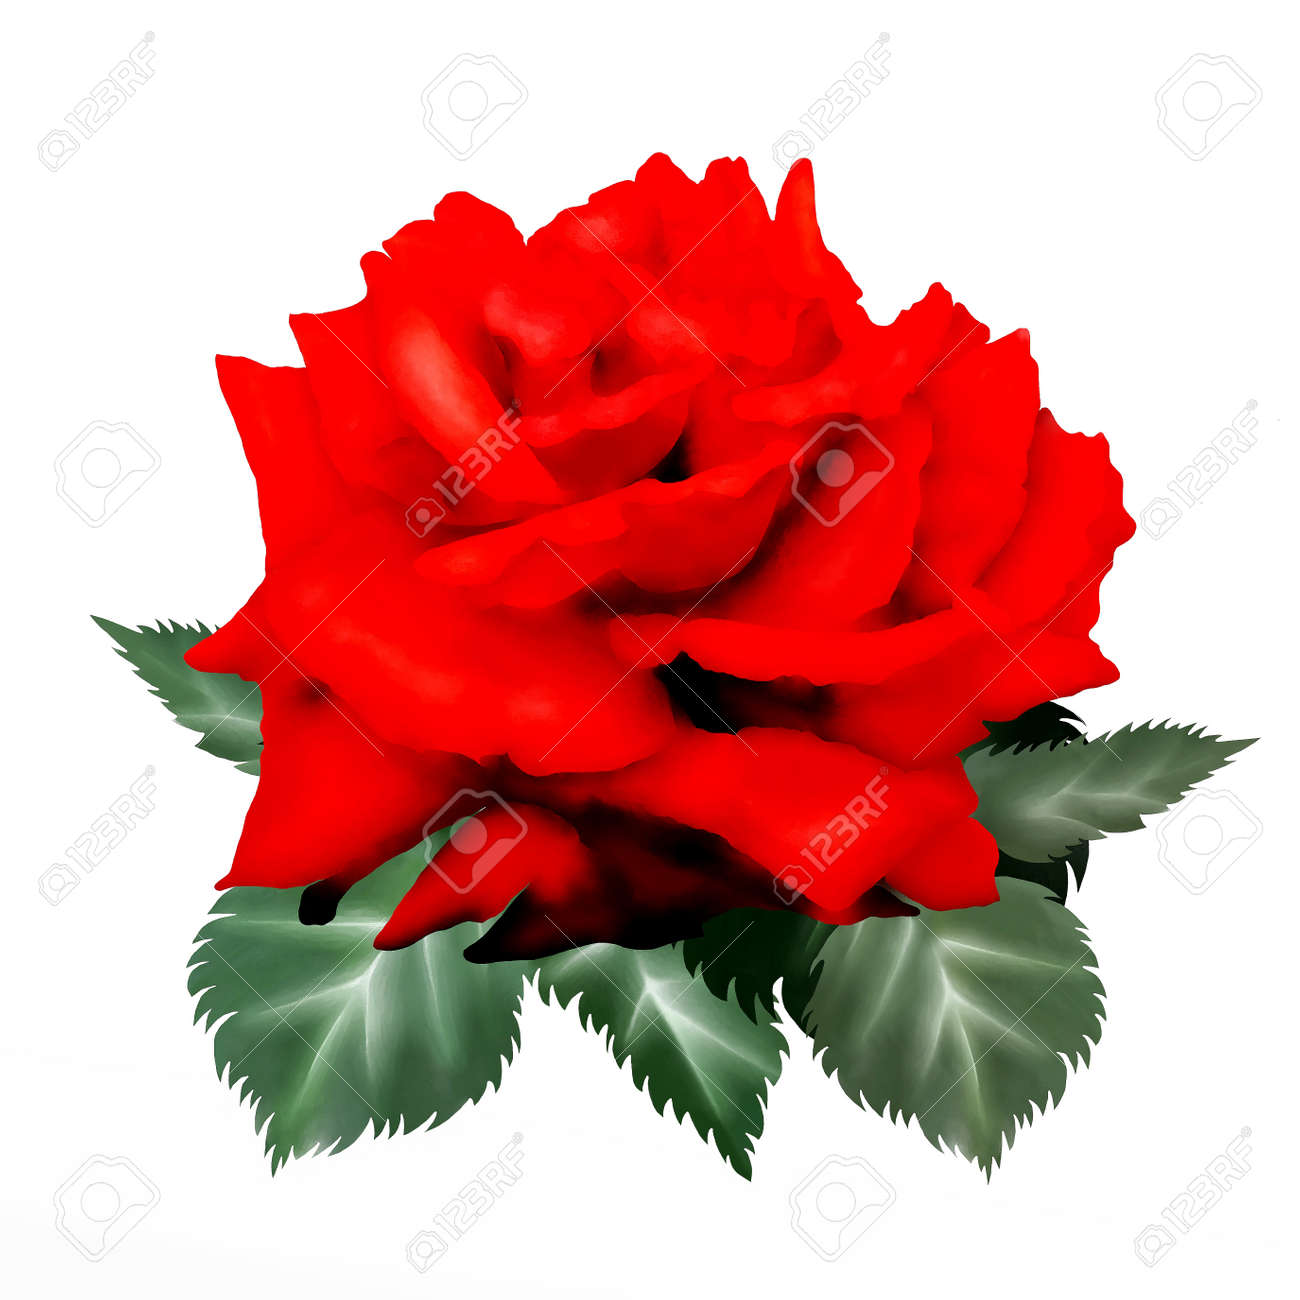 Un Symbole De L Amour Dessin A La Main D Une Belle Rose Rouge Close